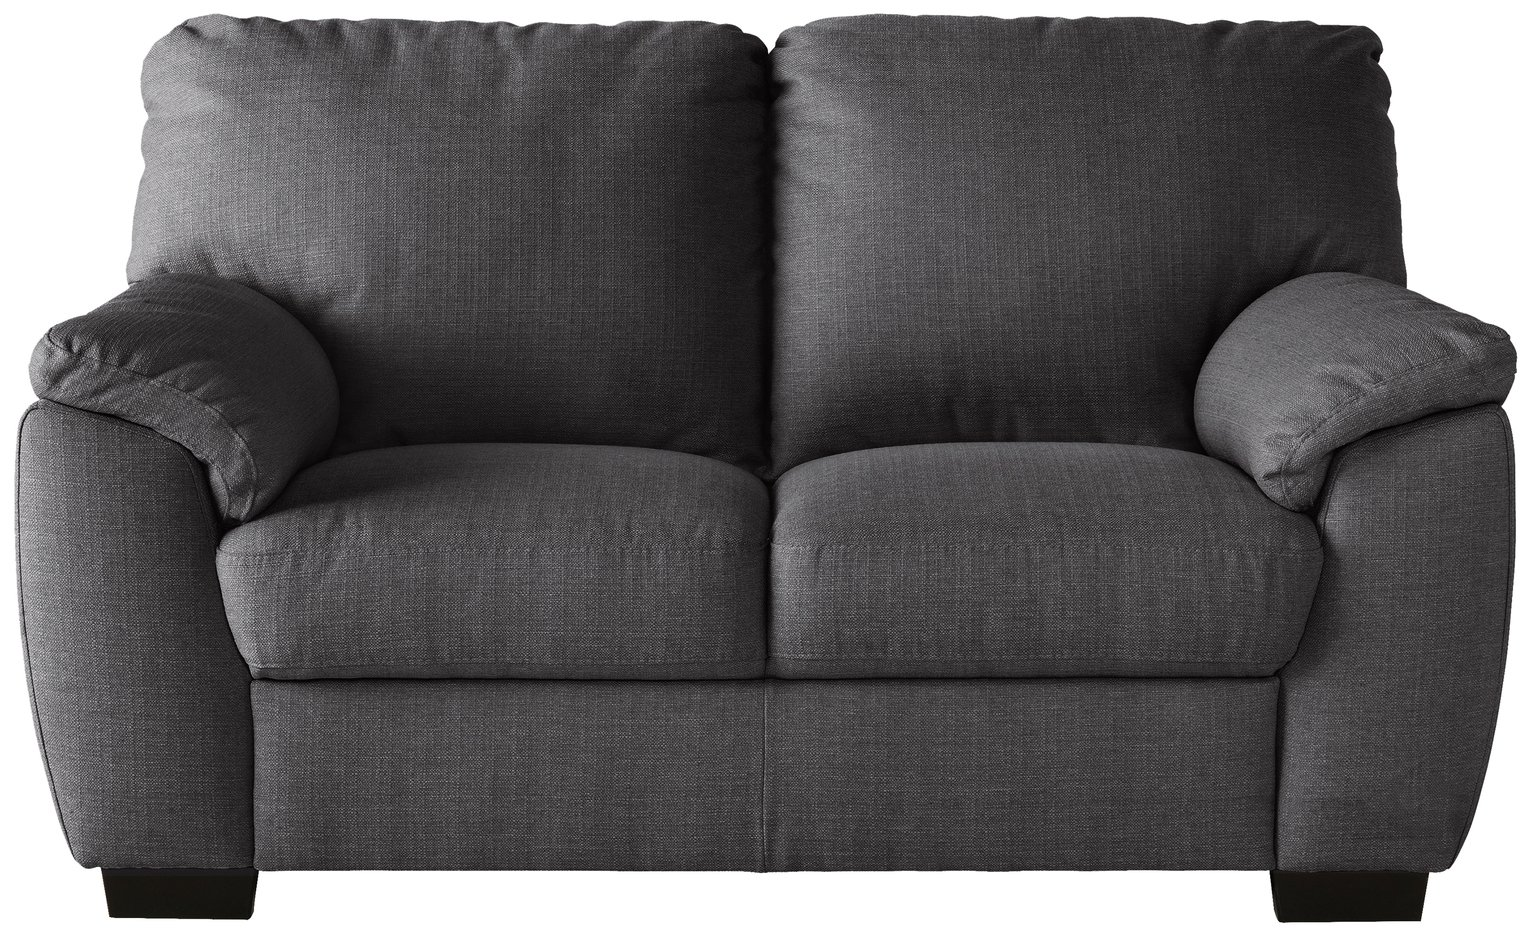 Sofa Settee Argos Buy Argos Home Milano 2 Seater Fabric Sofa Charcoal